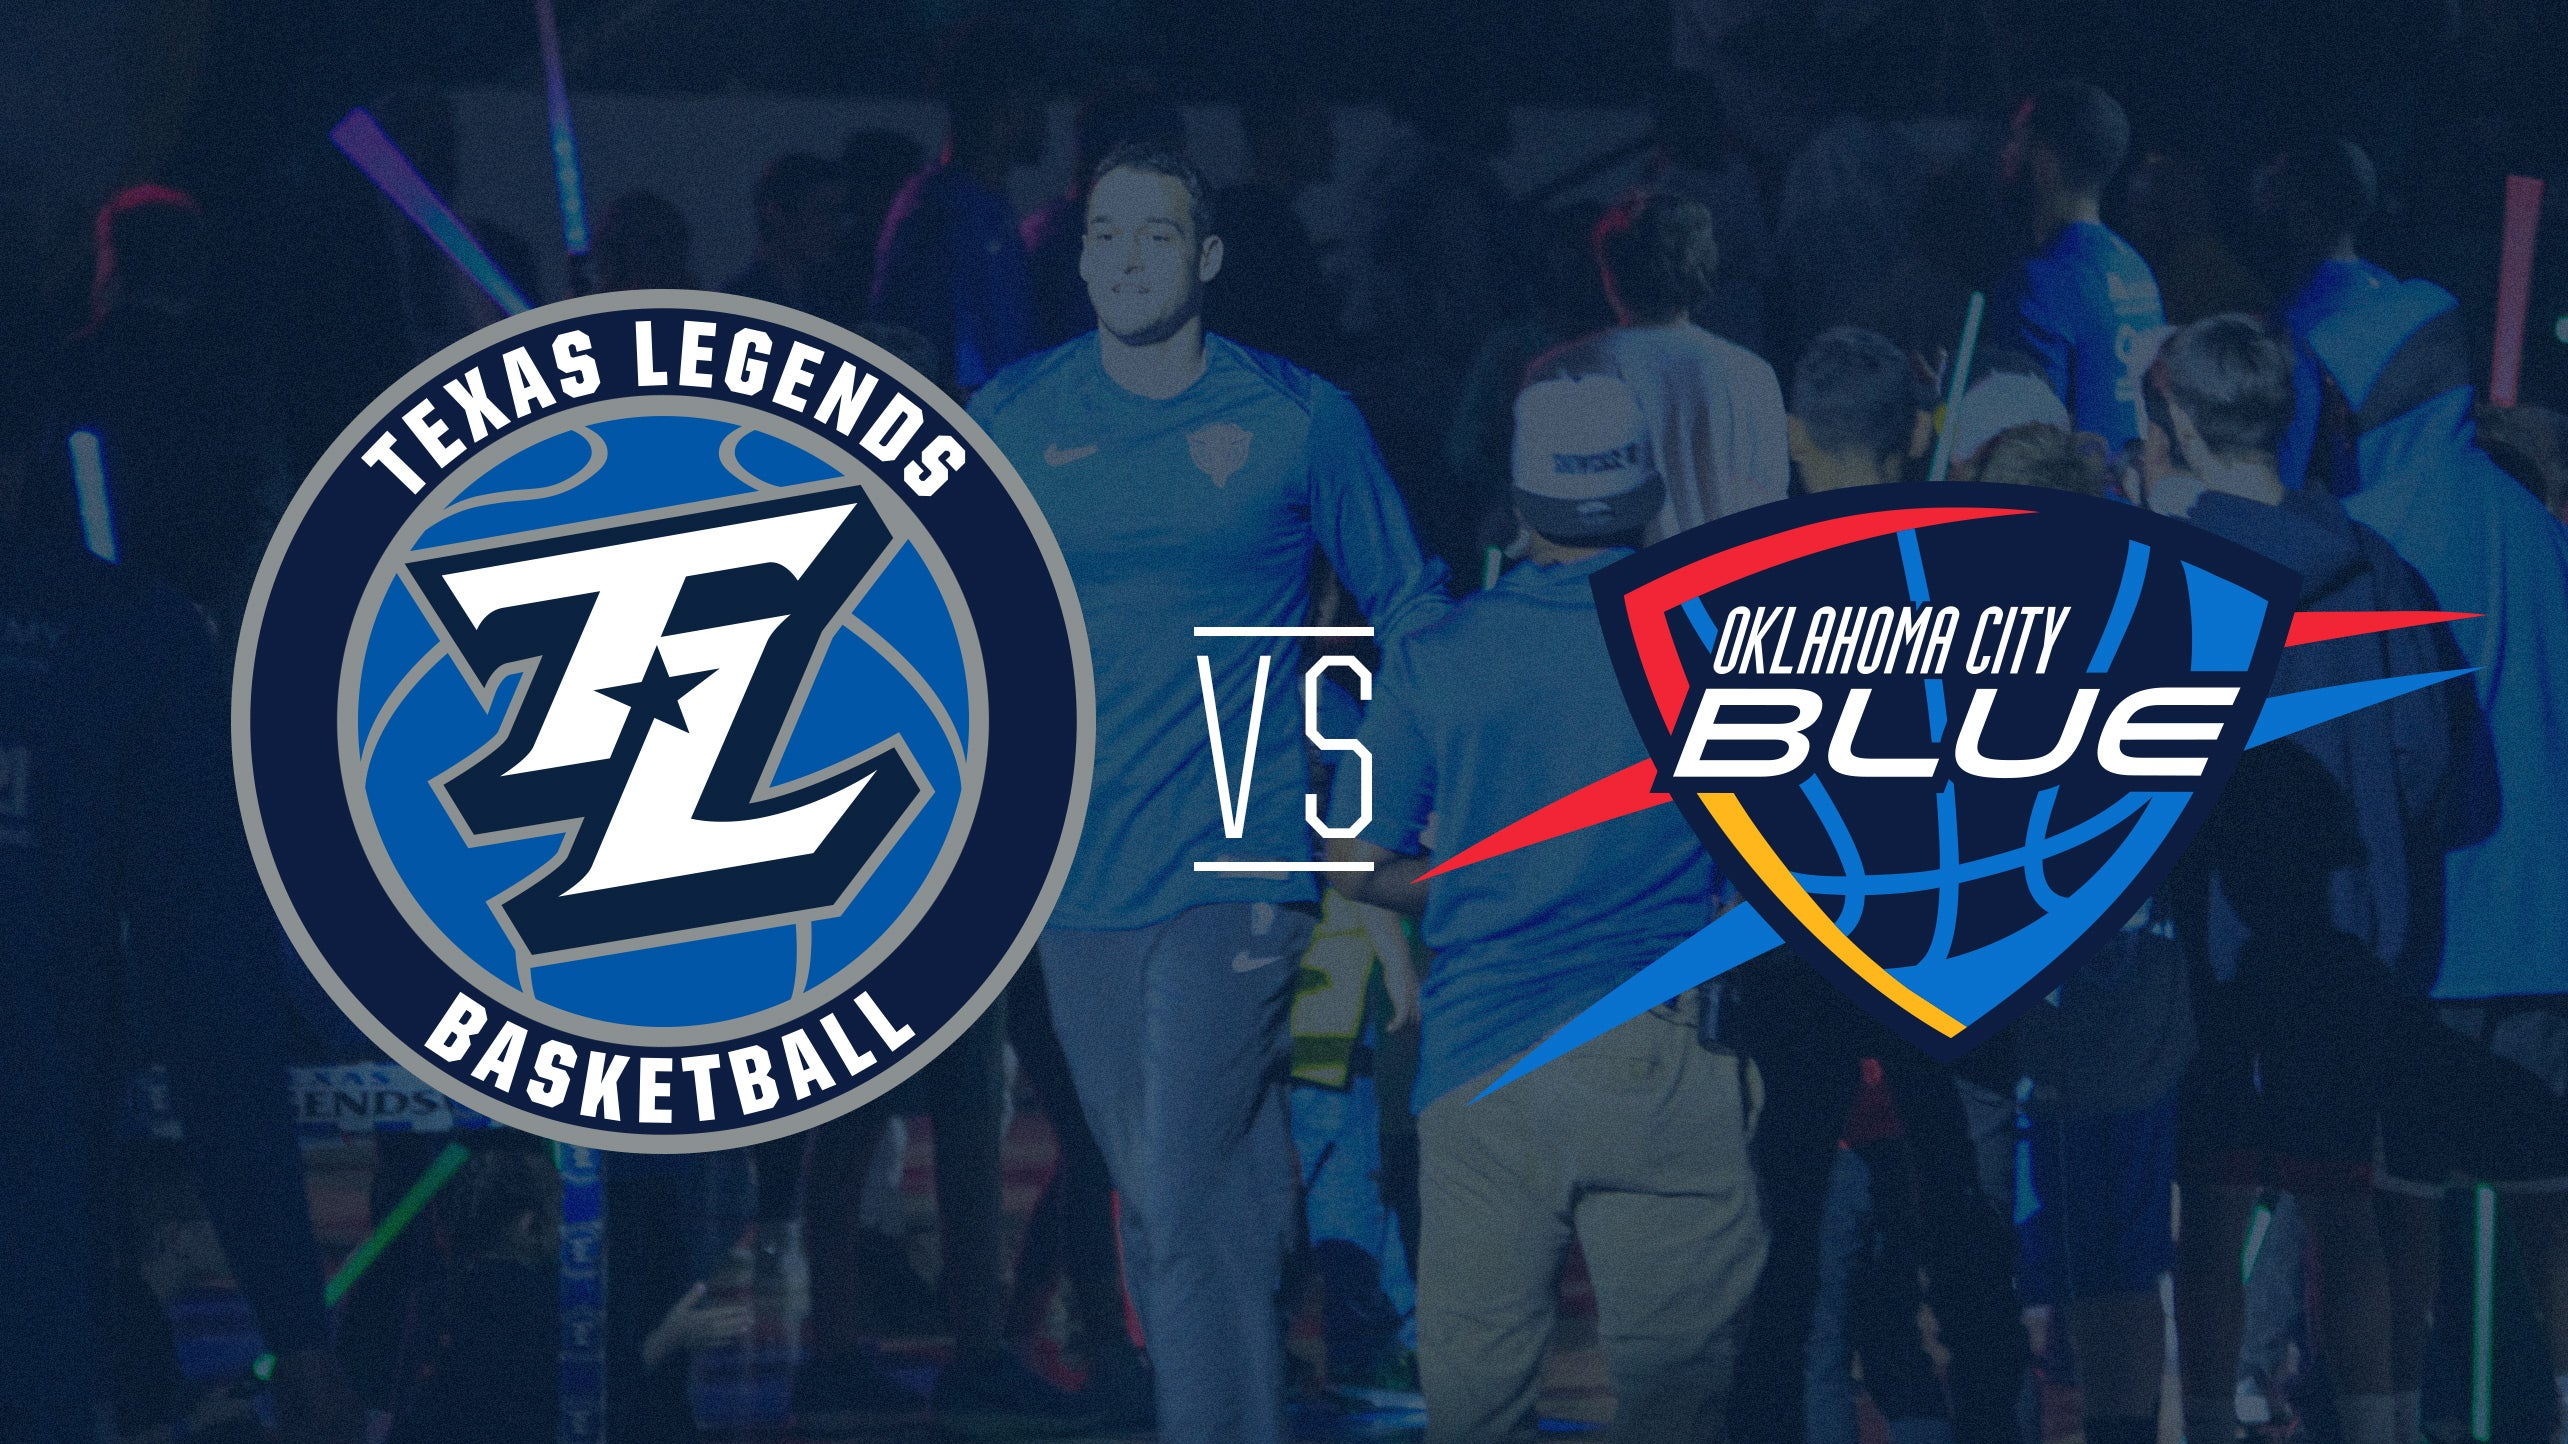 Texas Legends vs Oklahoma City Blue